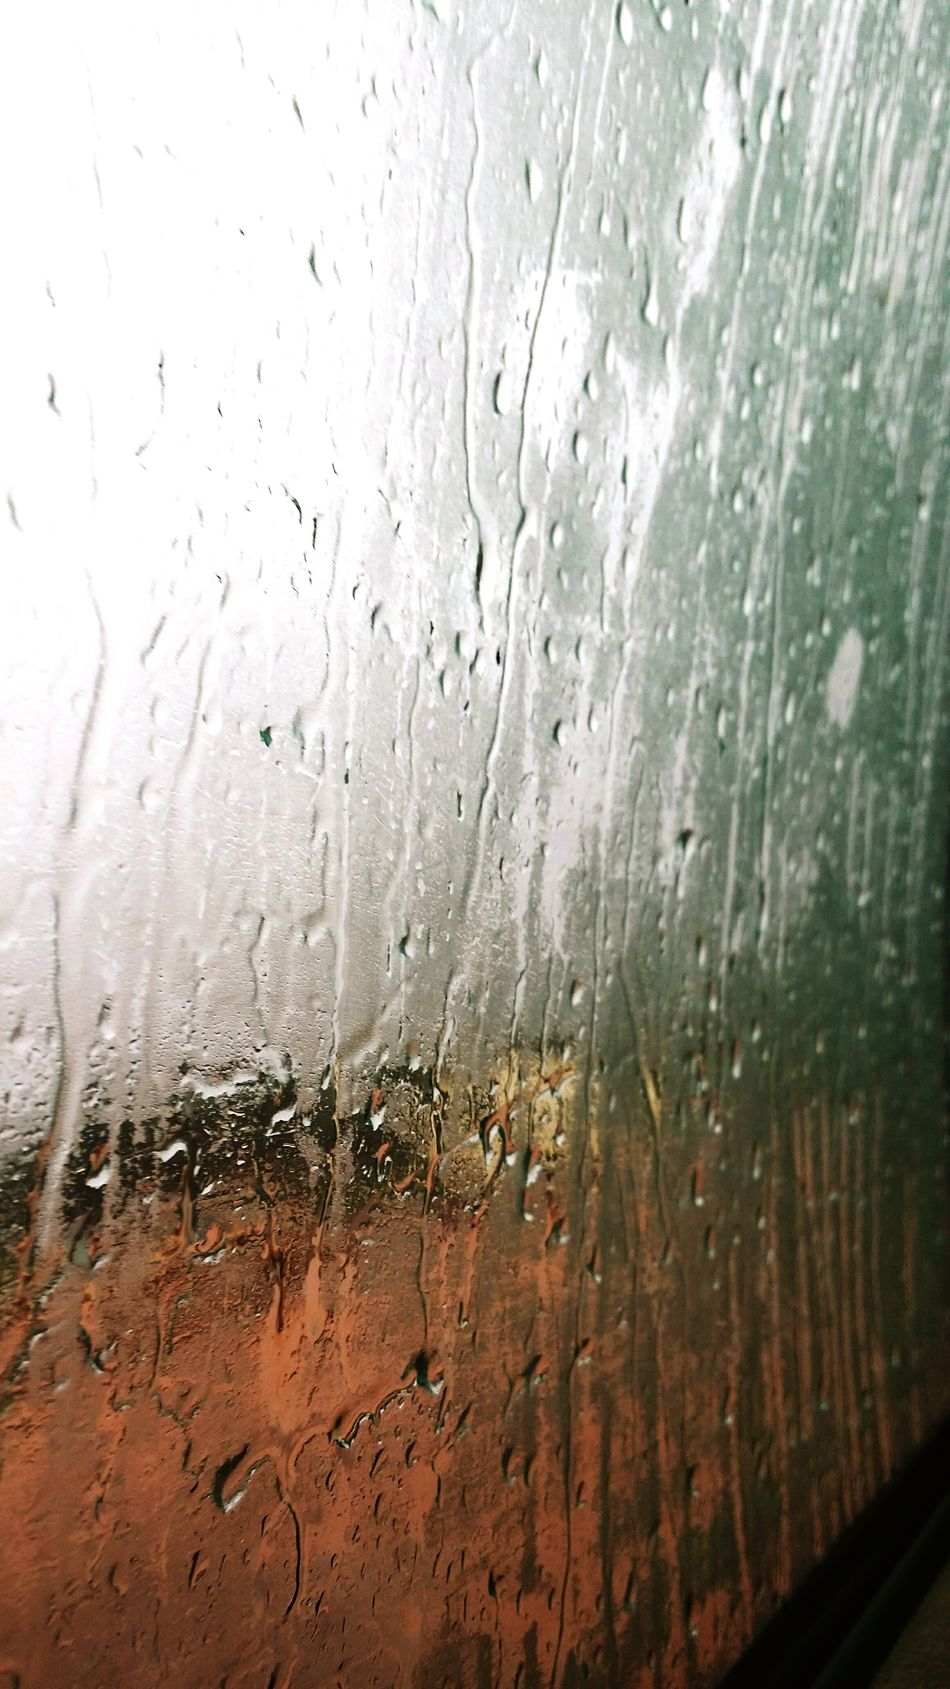 Abstraite Contemporaine Abstraction Decor Photographie Affiche Abstraction Art Rain Window RainyDay Shower Abstract Rare Beauty Africa